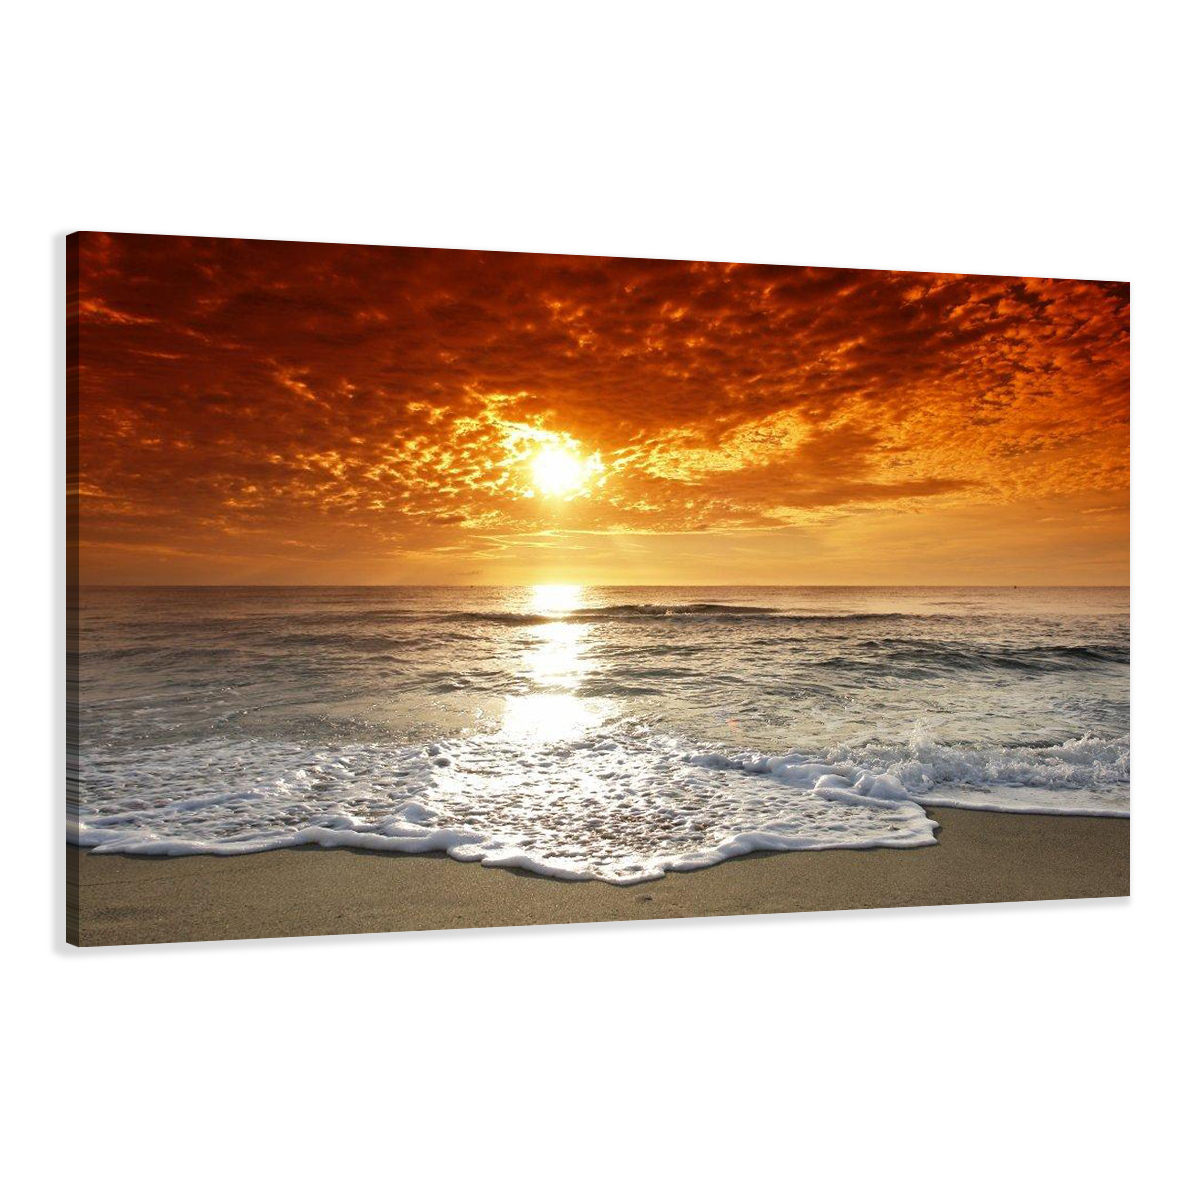 leinwand wandbilder bild strand meer verschiedene gr en kunstdruck 1505 c1 ebay. Black Bedroom Furniture Sets. Home Design Ideas